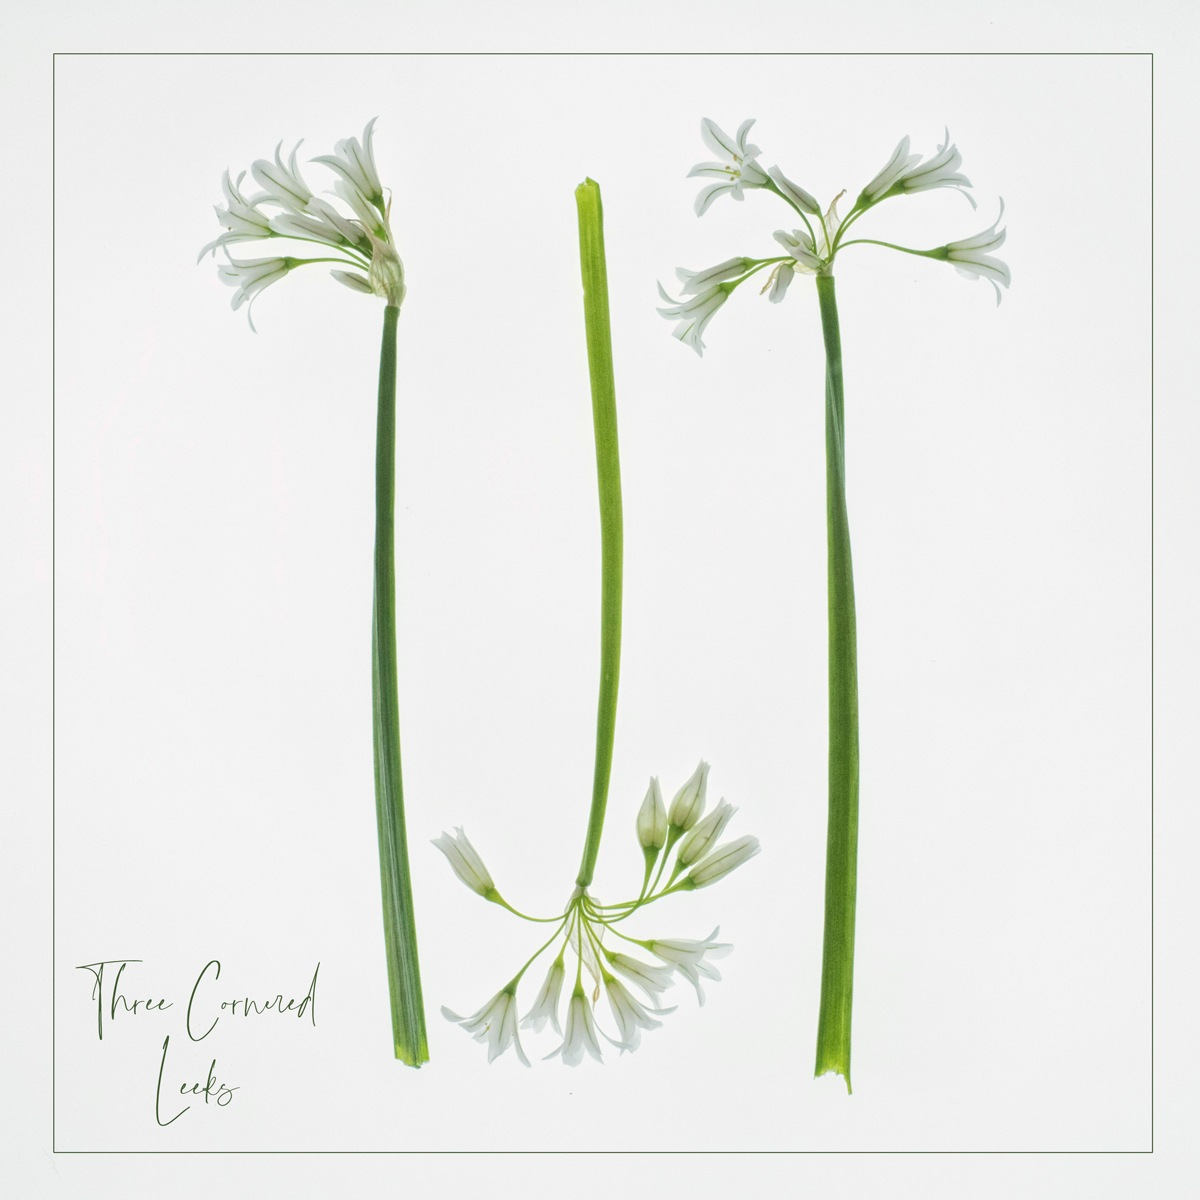 Three Cornered Leeks